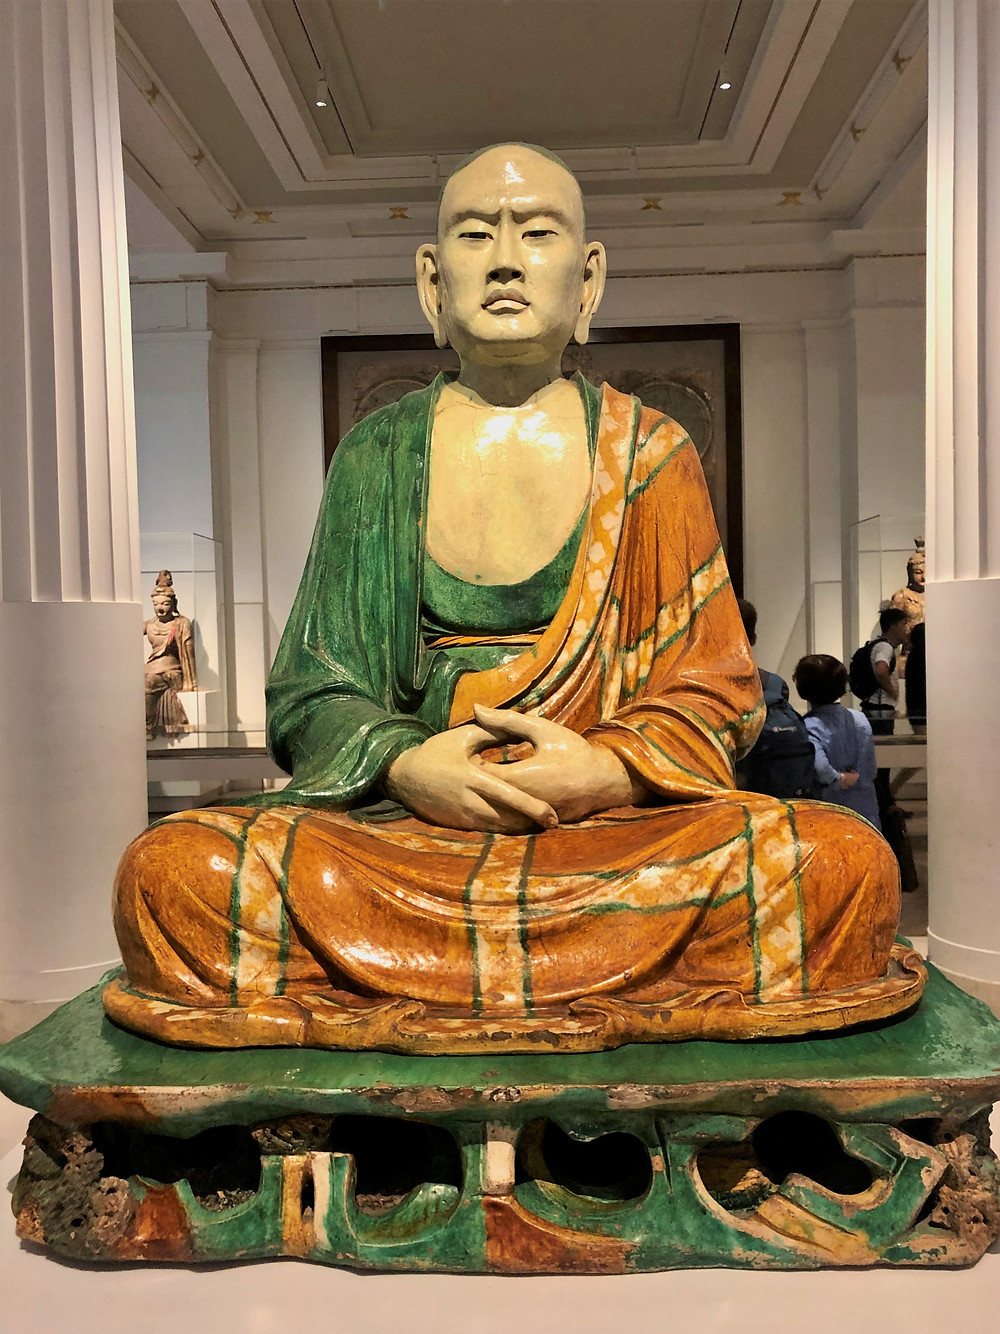 On display in The British Museum a life-sized glazed pottery sculpture of a luohan (historic disciples of Buddha) dating to the period of the Liao Dynasty (907–1125)